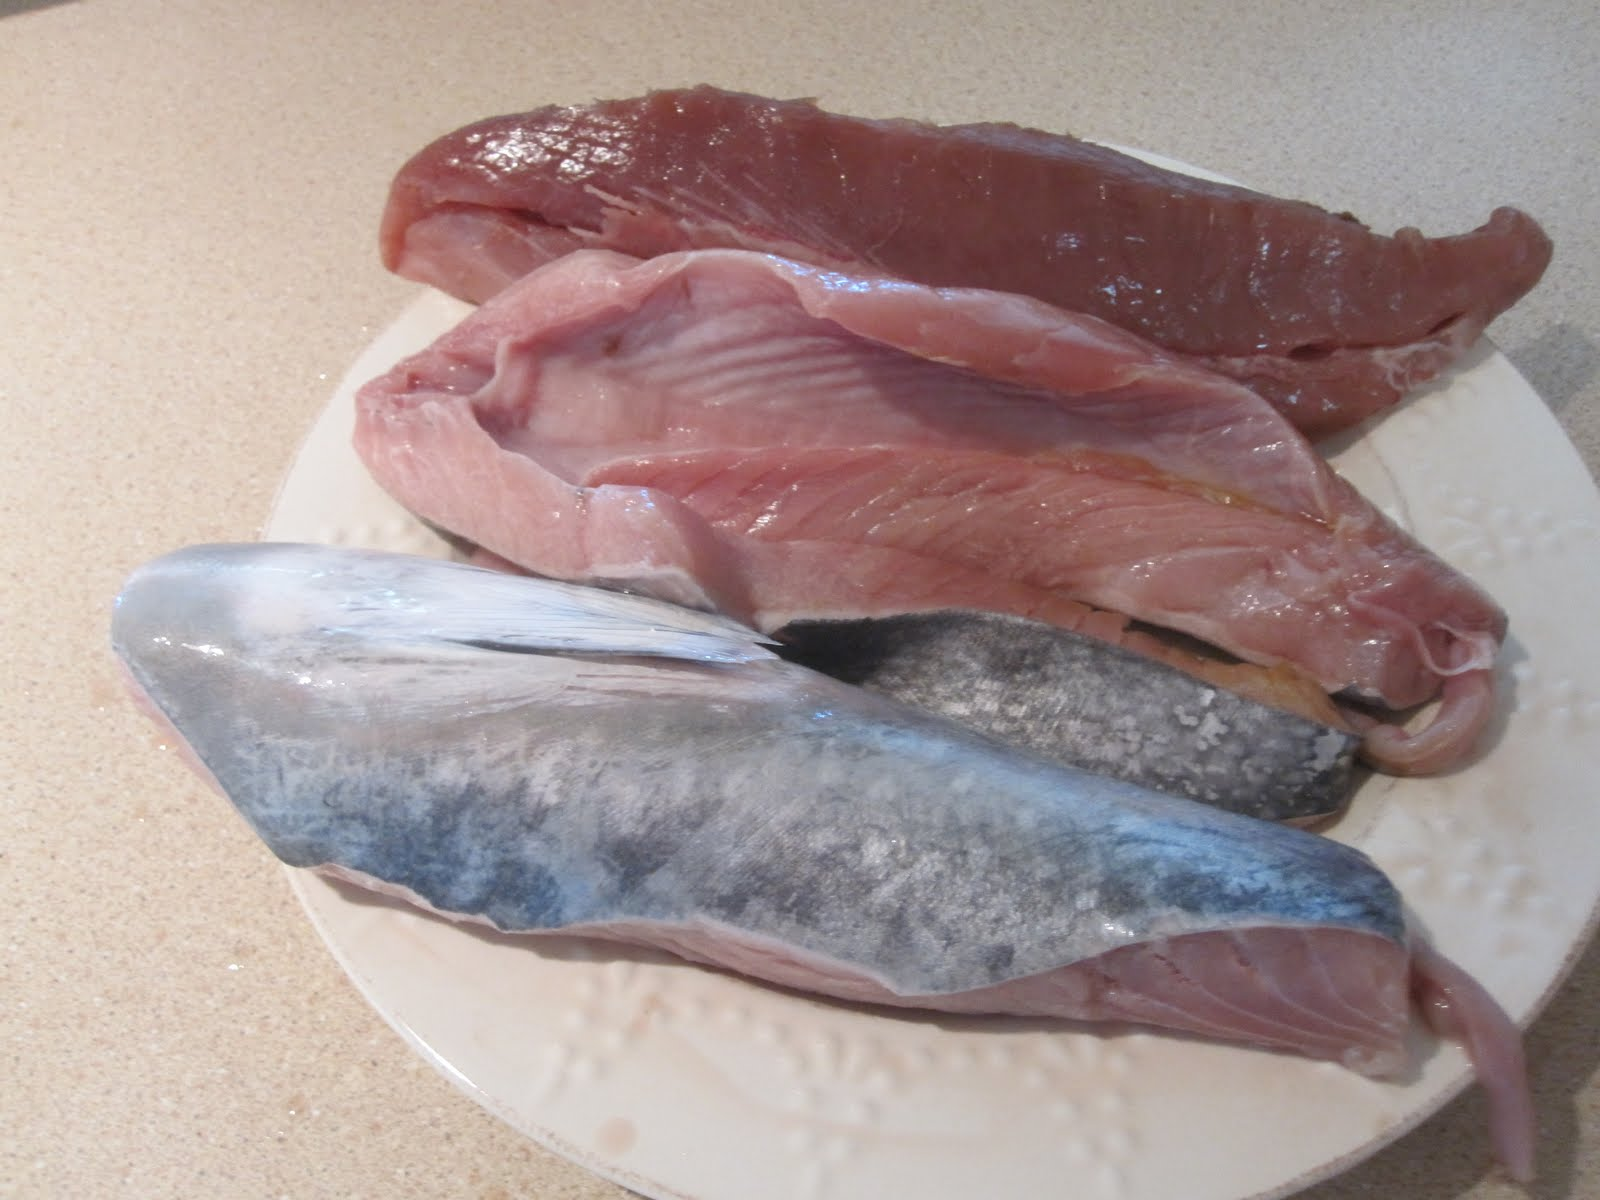 Cannundrums: Barbecued Bluefin Tuna: Filet and Belly Meat